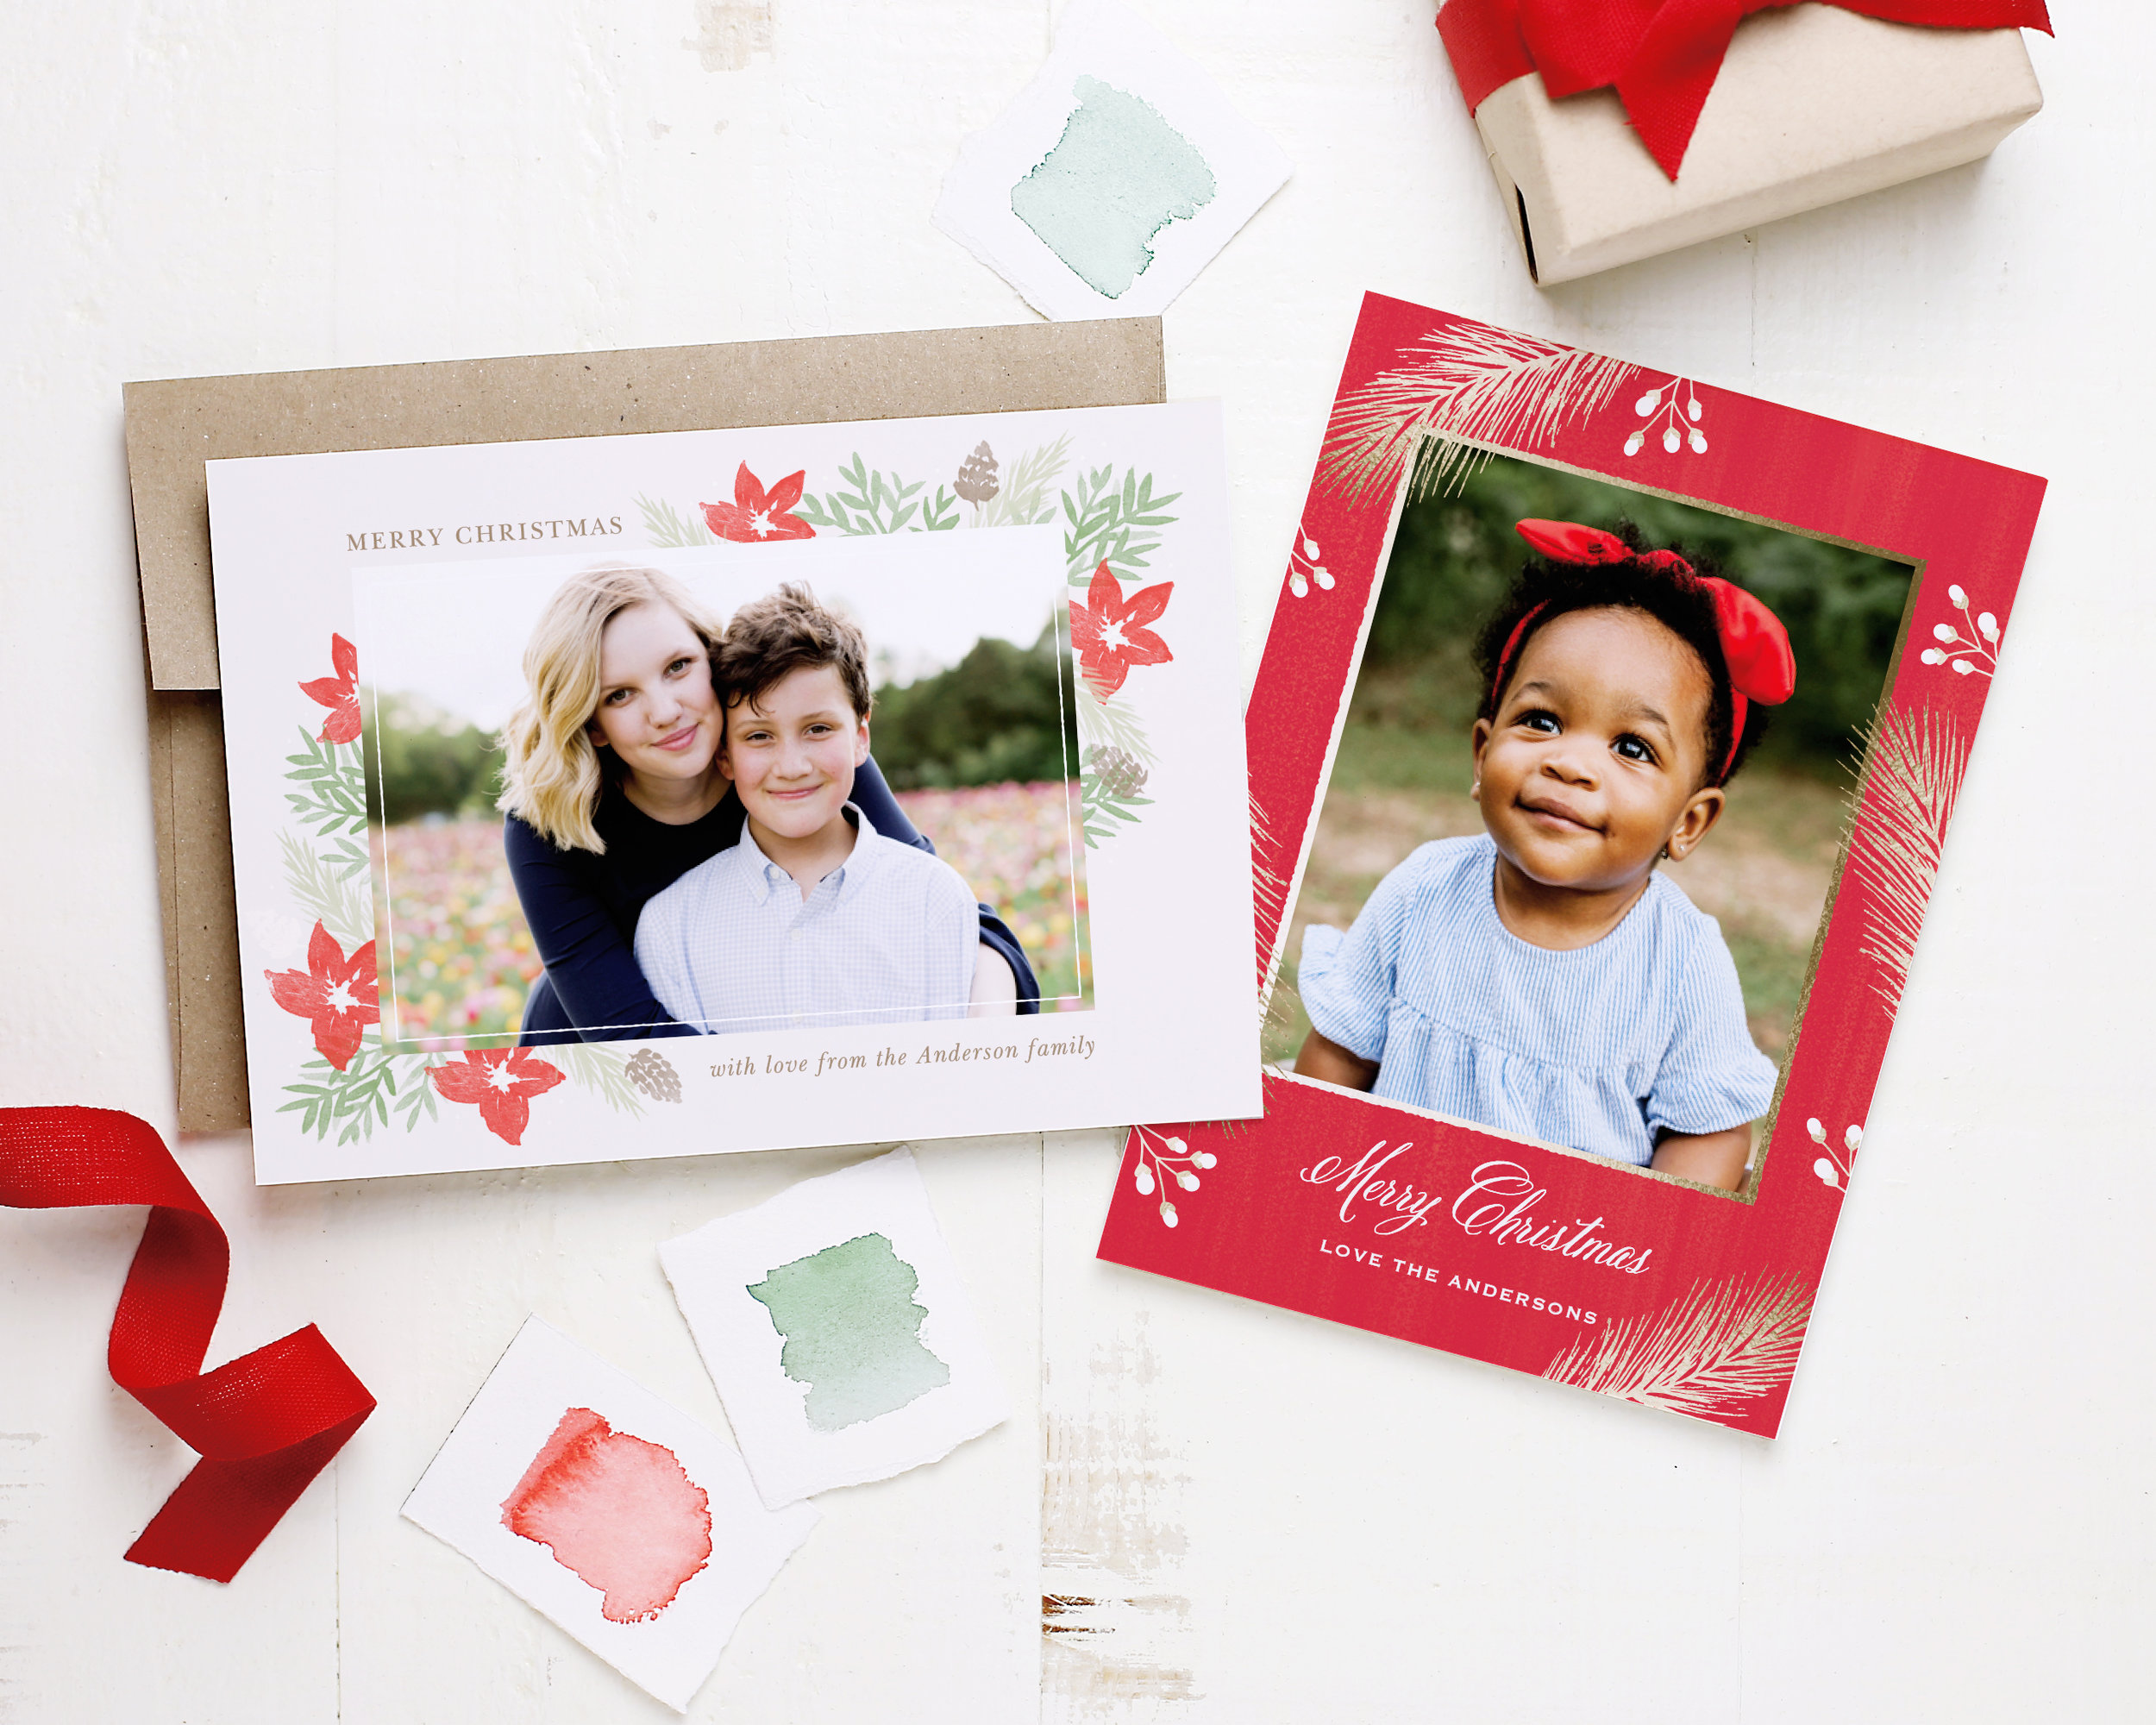 Basic_Invite_Christmas_Photo_Cards_5.jpg